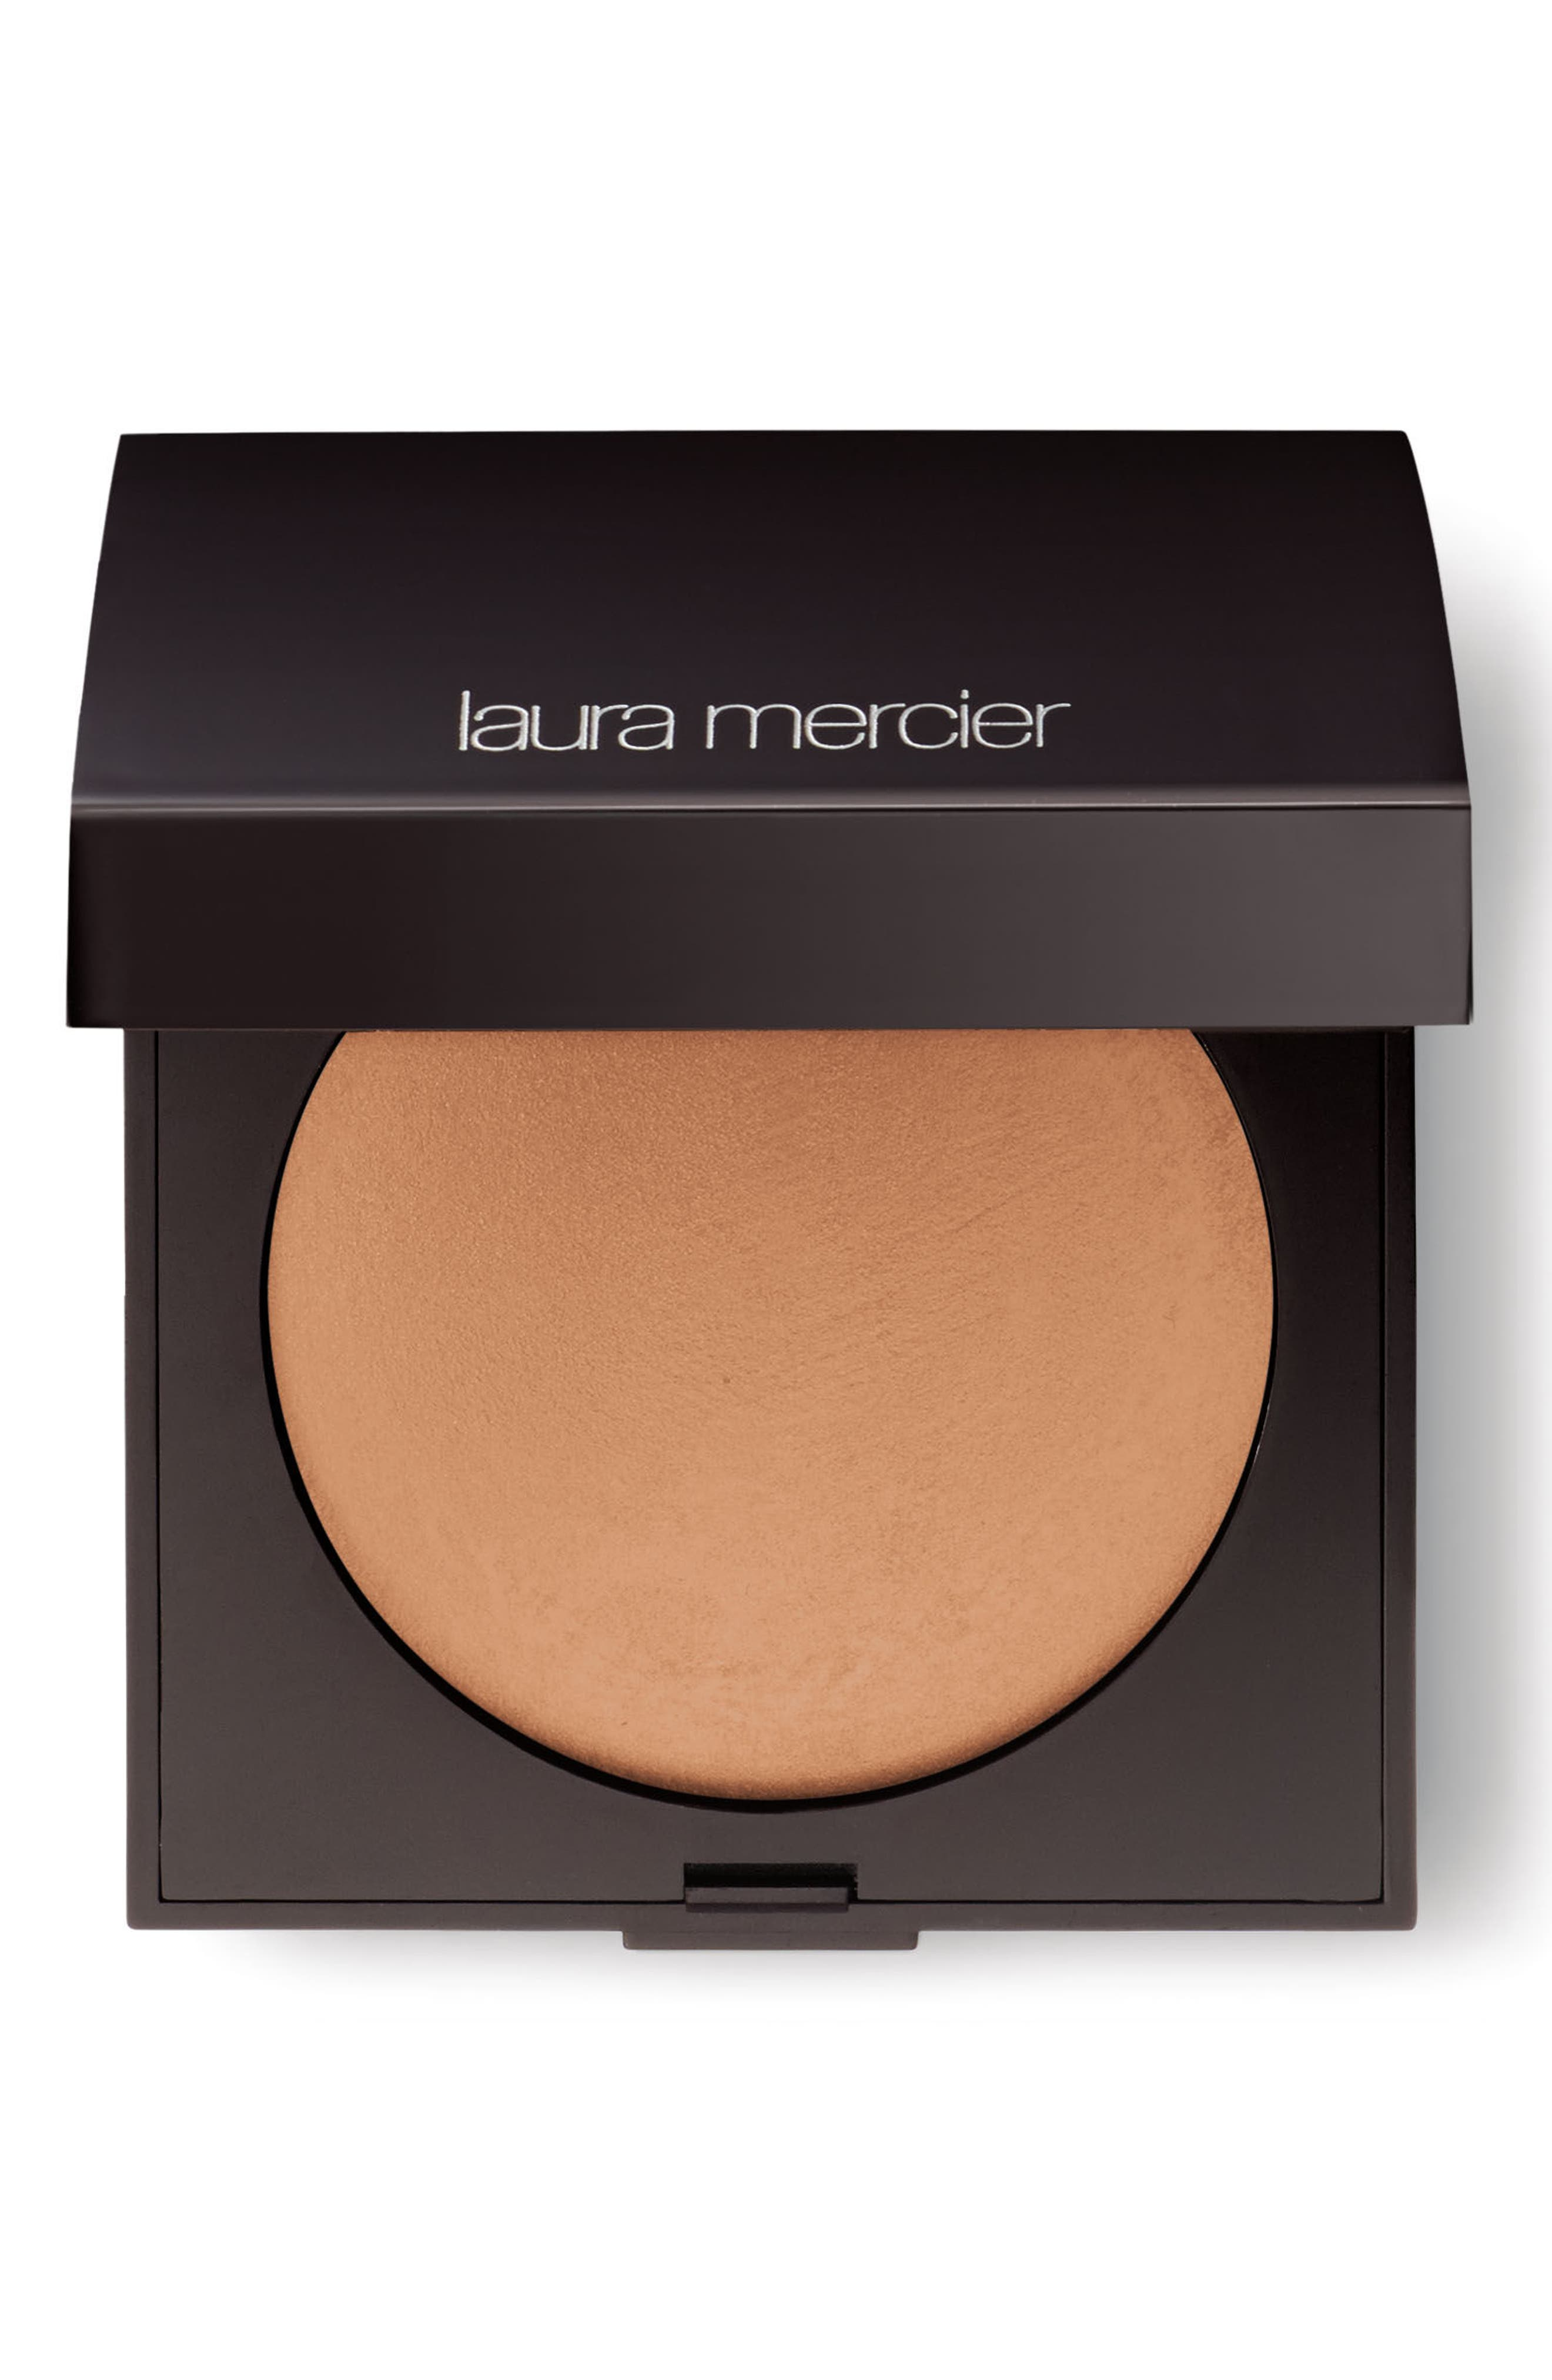 Matte Radiance Baked Powder,                         Main,                         color, Bronze 03